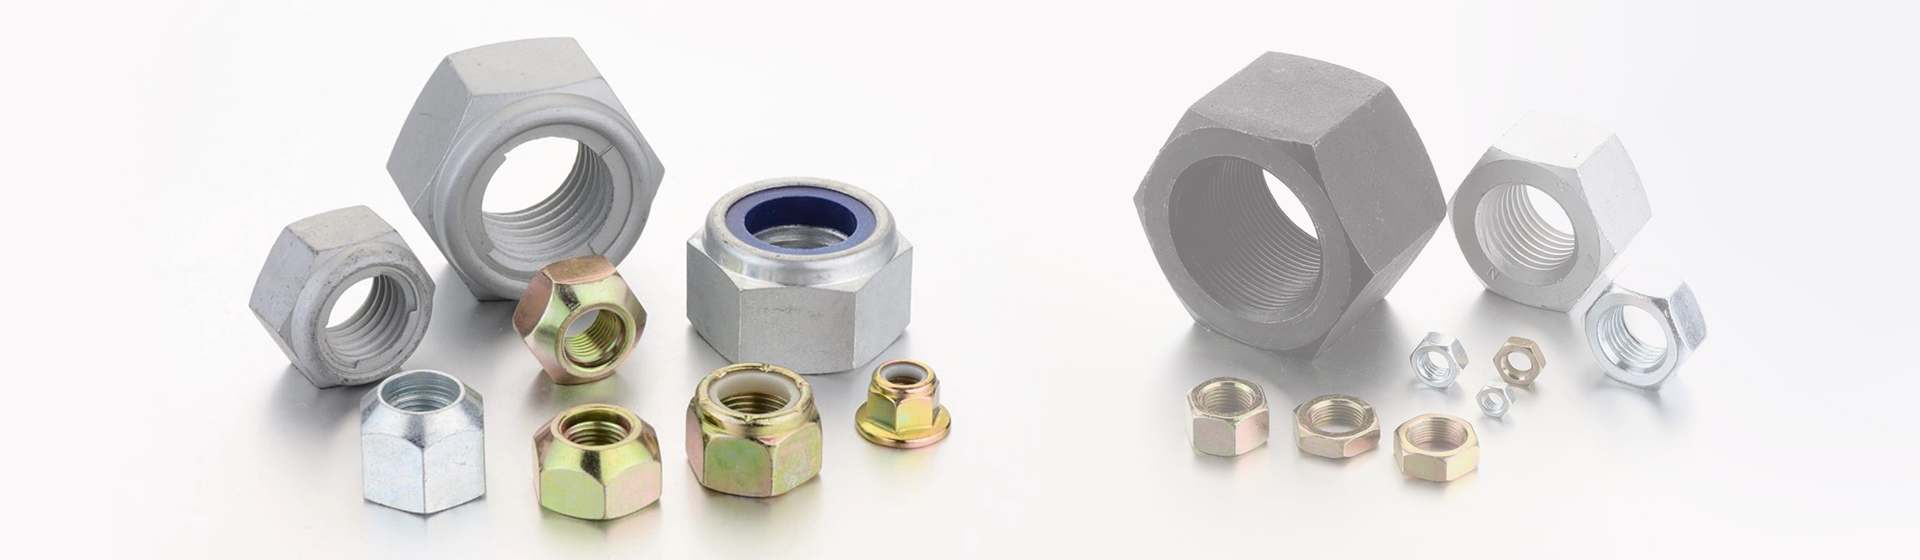 M12 A2 STAINLESS STEEL HEX CASTLE SLOTTED NUTS M12x1.75  PACK OF 2